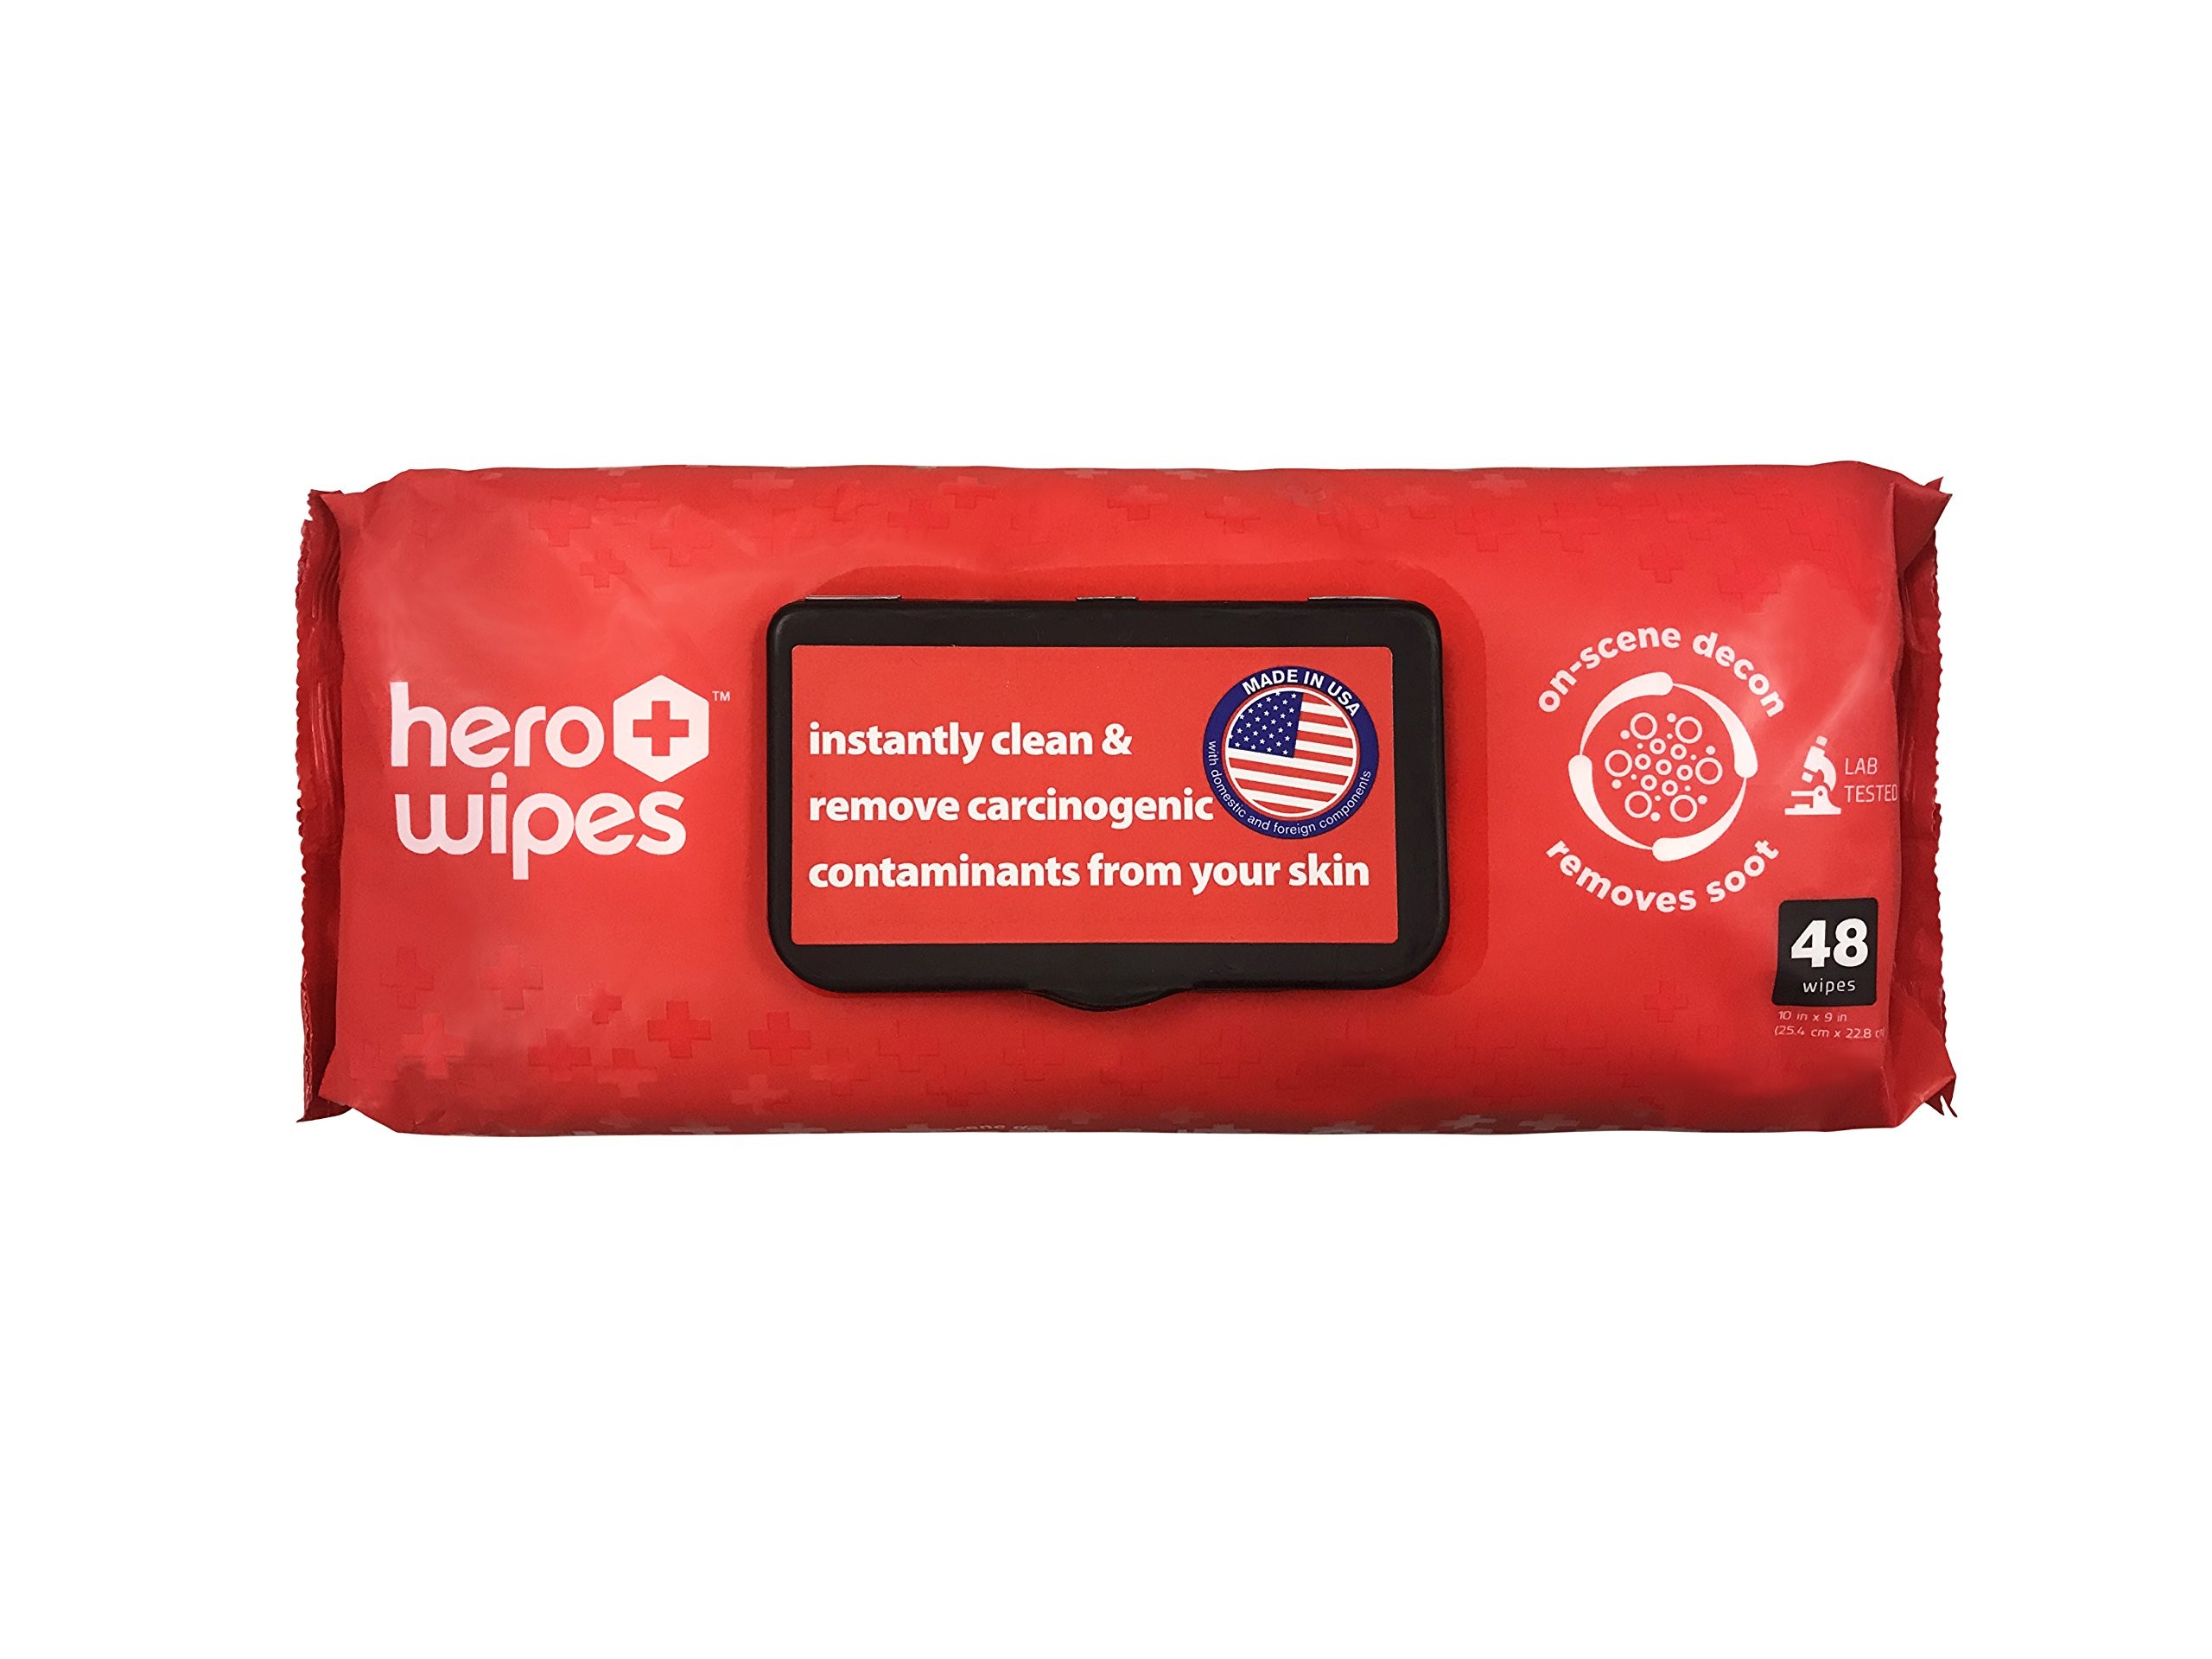 Hero wipes for Firefighters (Total 576 Count, 48 Count per each) - Case of 12 by Hero Wipes